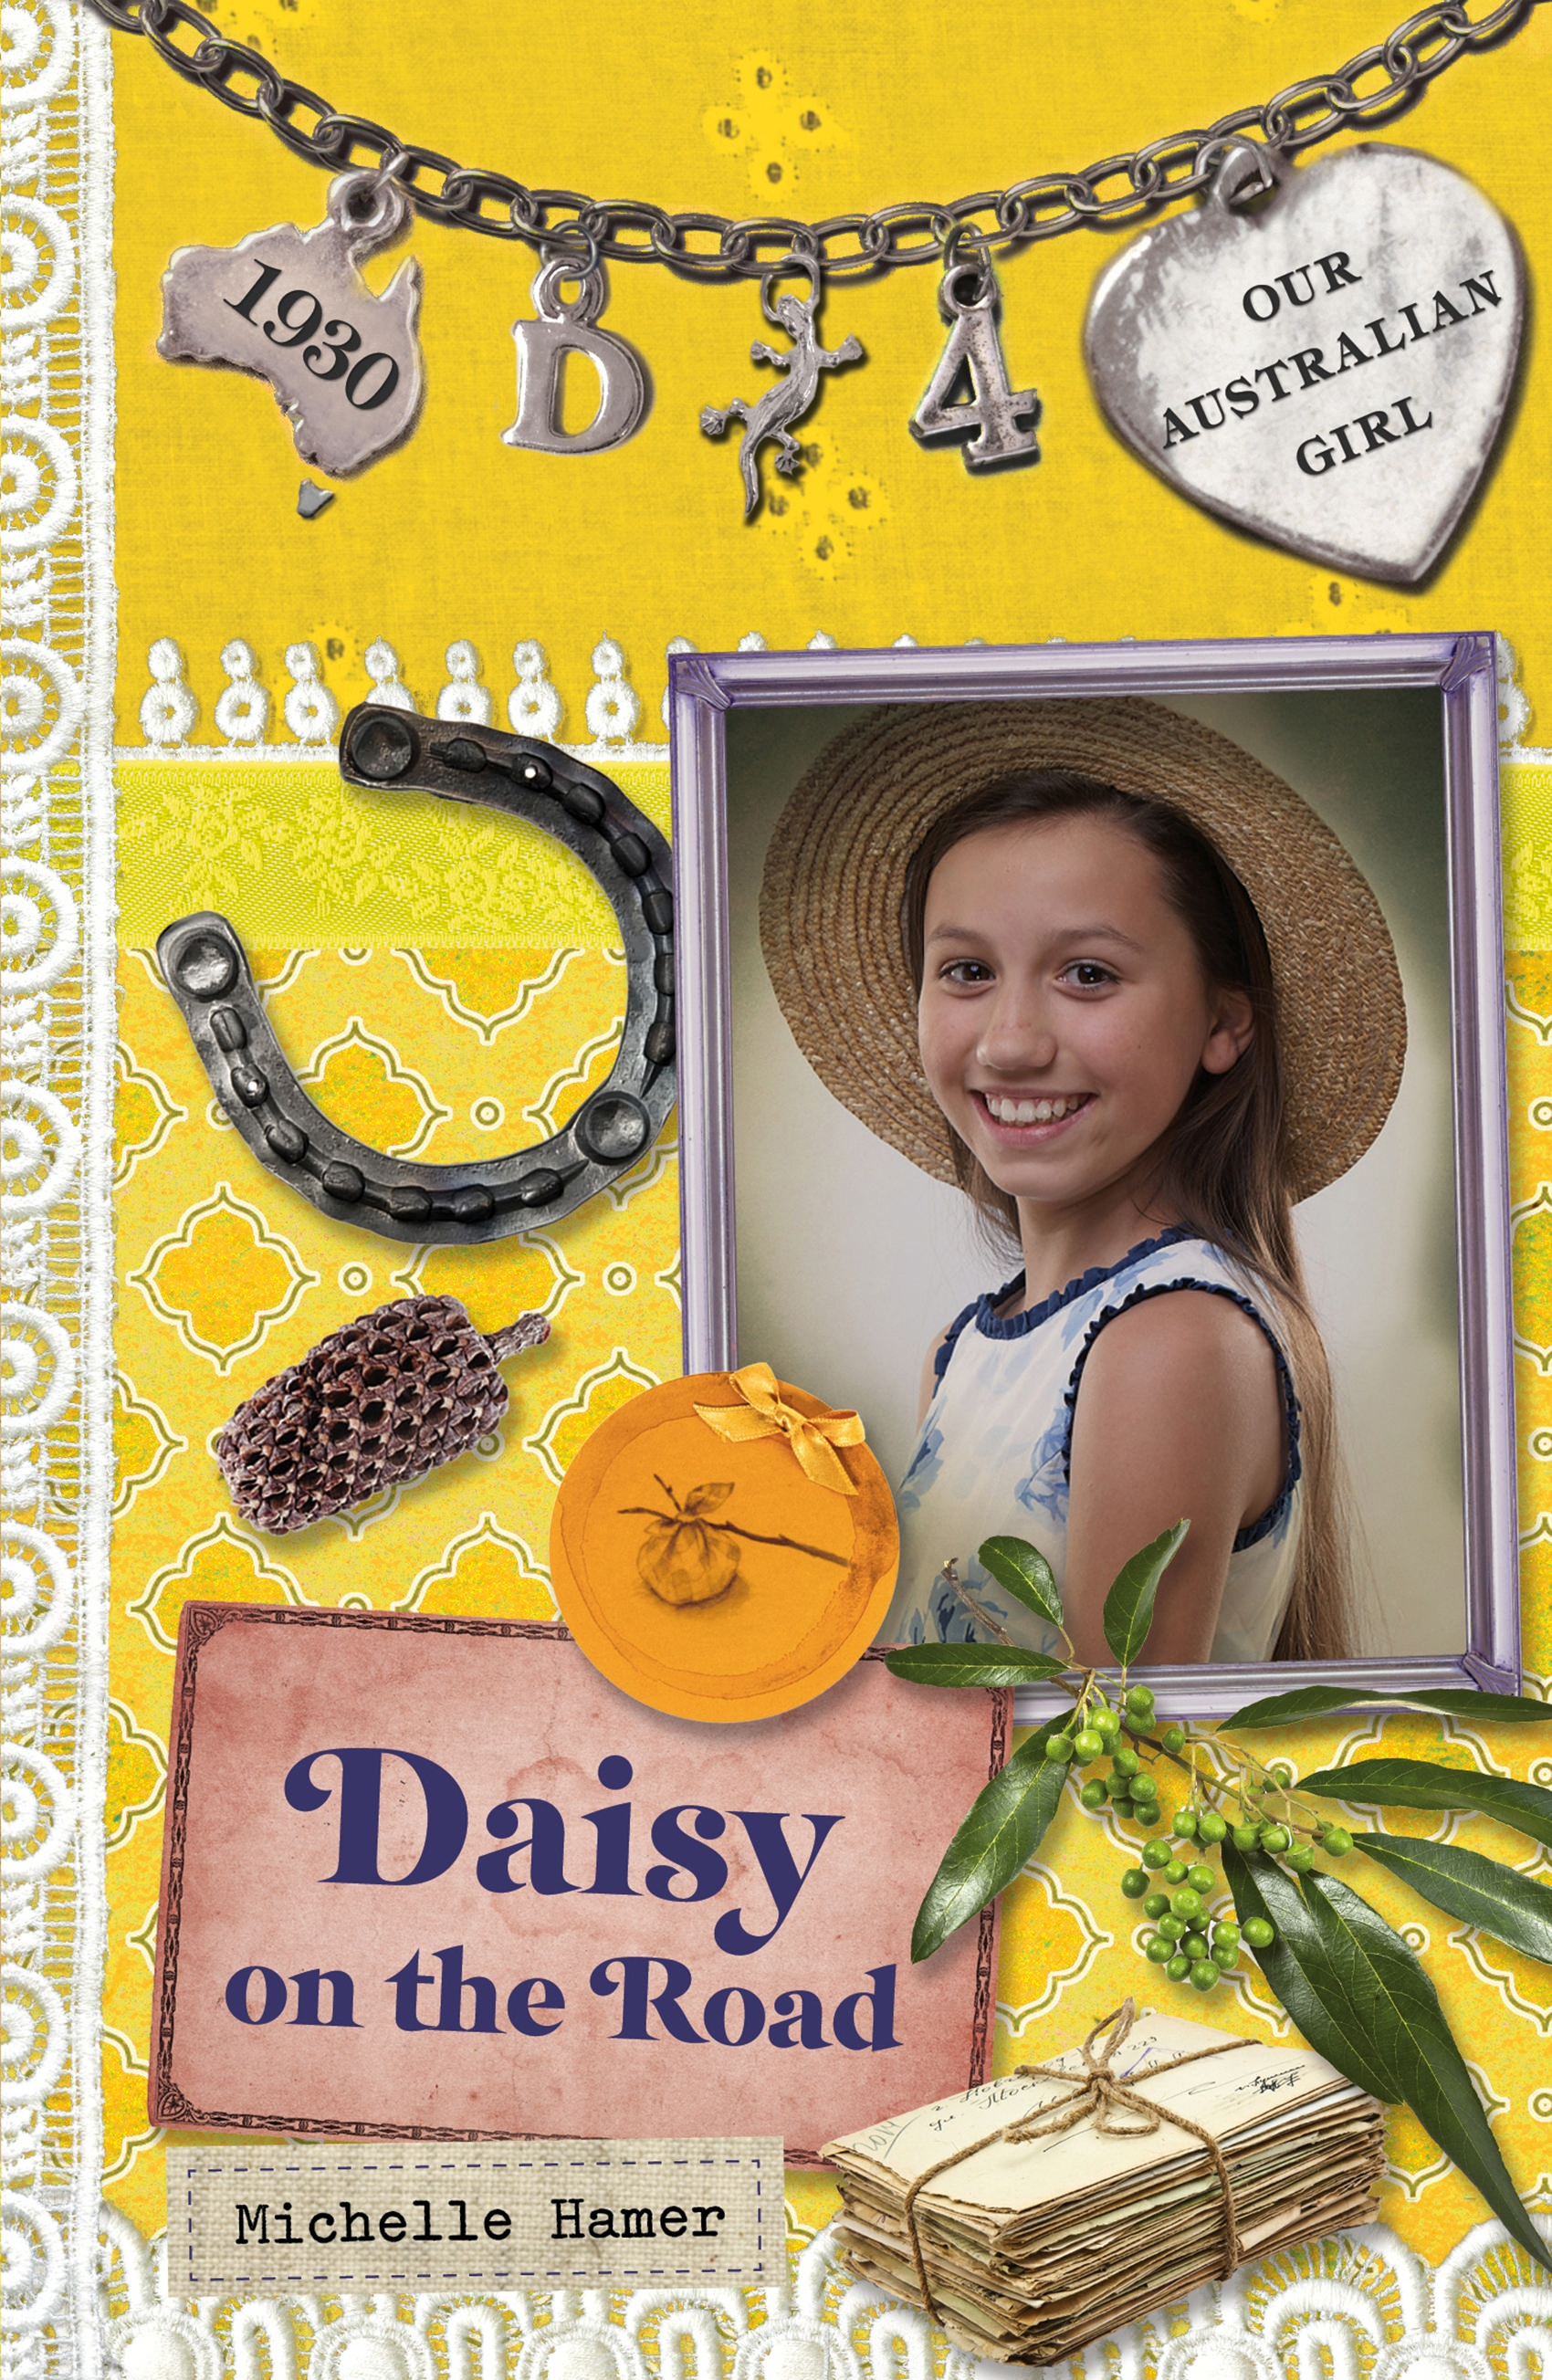 Our Australian Girl: Daisy on the Road (Book 4) (eBook)